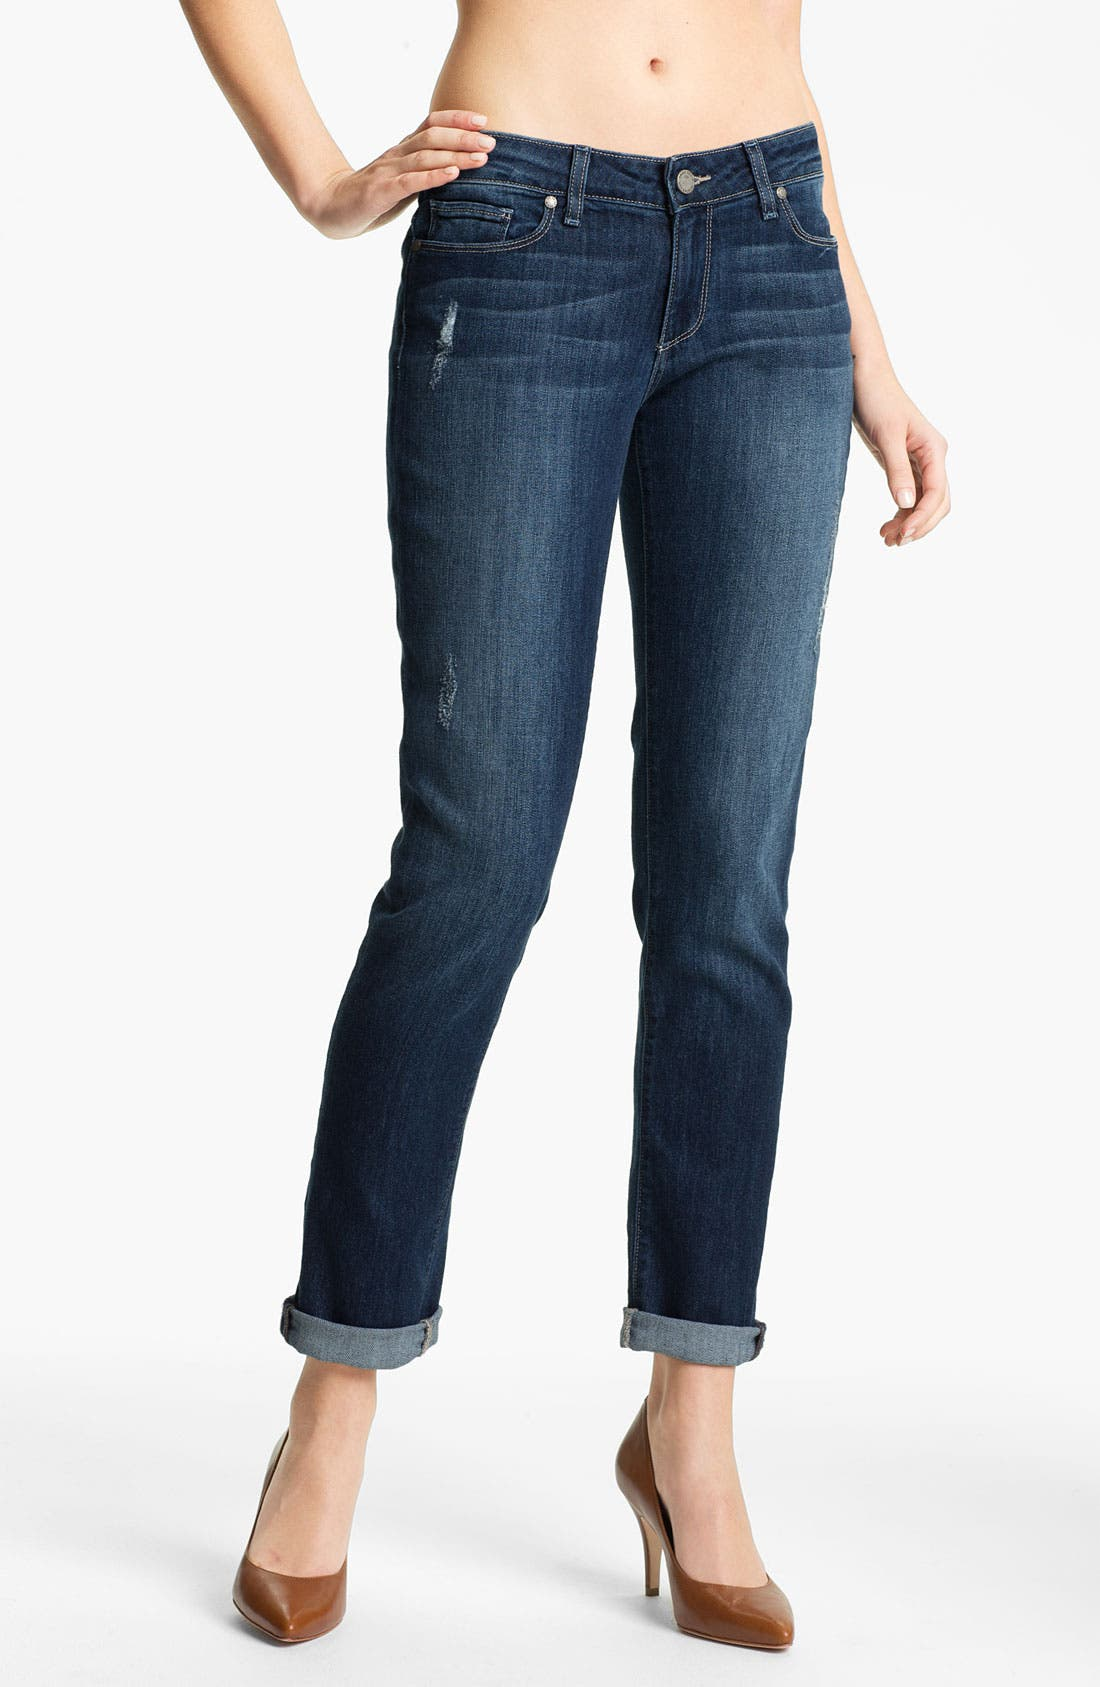 Denim 'Jimmy Jimmy' Distressed Skinny Jeans,                         Main,                         color, 400